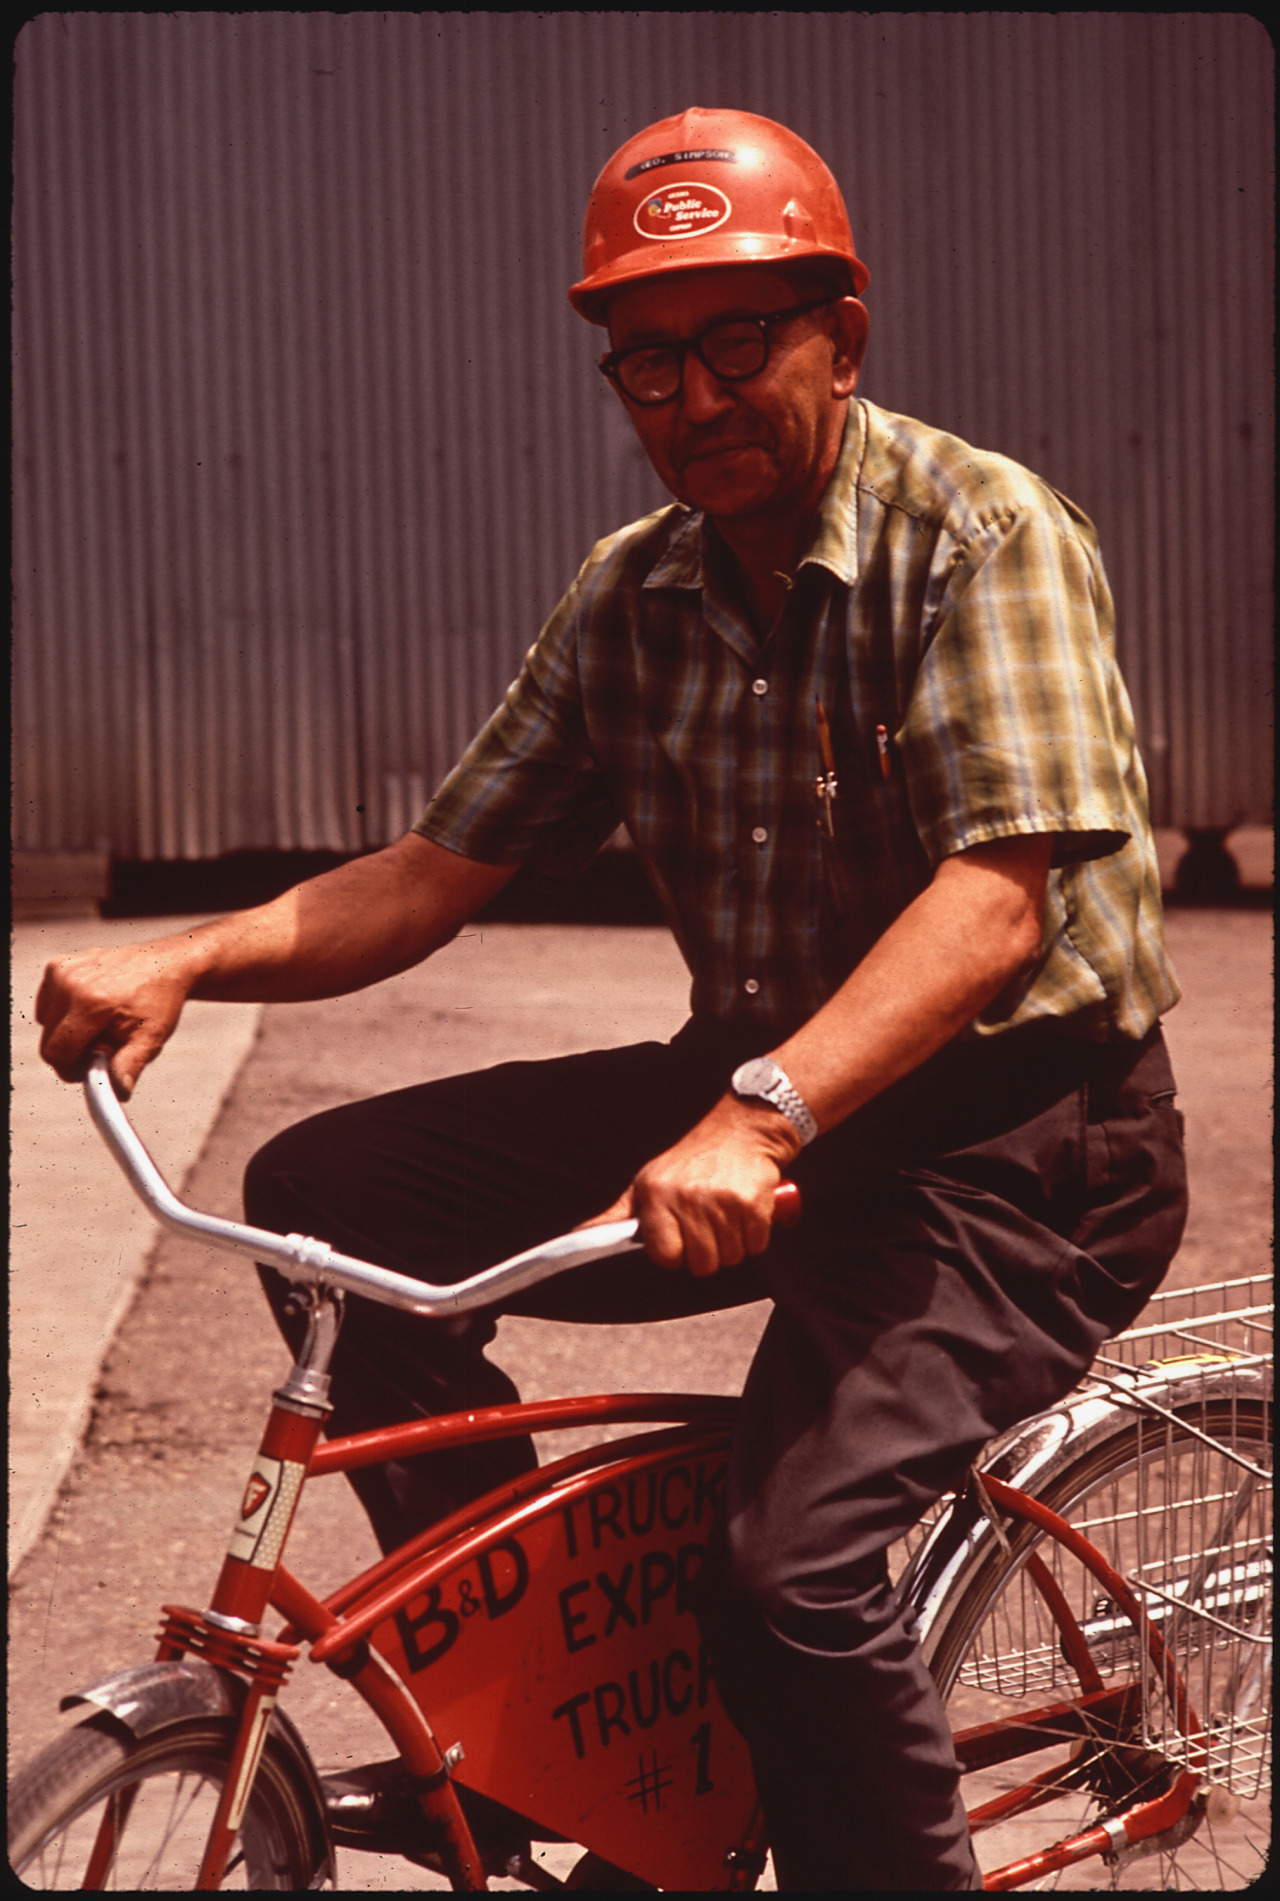 "It's bike to work day!  ARIZONA, 05/1972 Terry Eiler, photographer.  From the EPA's DOCUMERICA series.  (More items from DOCUMERICA are currently on exhibit at the National Archives:  ""Searching for the Seventies: The DOCUMERICA Photography Project"")  Unfortunately the caption doesn't tell us much, but we know this smart cyclist remembered his helmet! Did you bike to work?  Tandem? Recumbent? Bikeshare?"